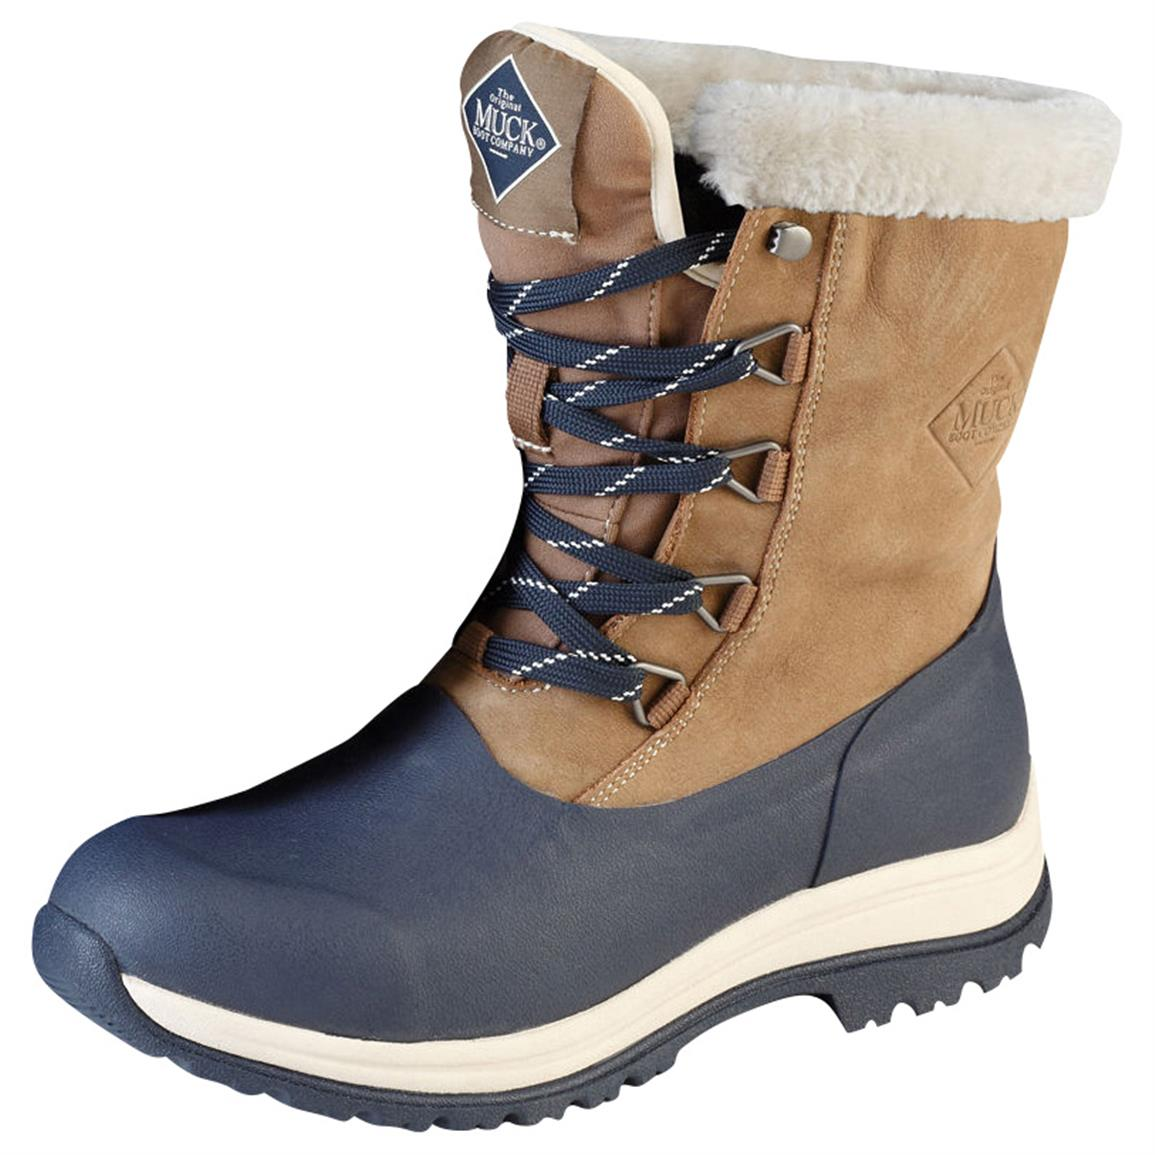 Muck Boot Women's Arctic Apres Lace Winter Boots, Otter